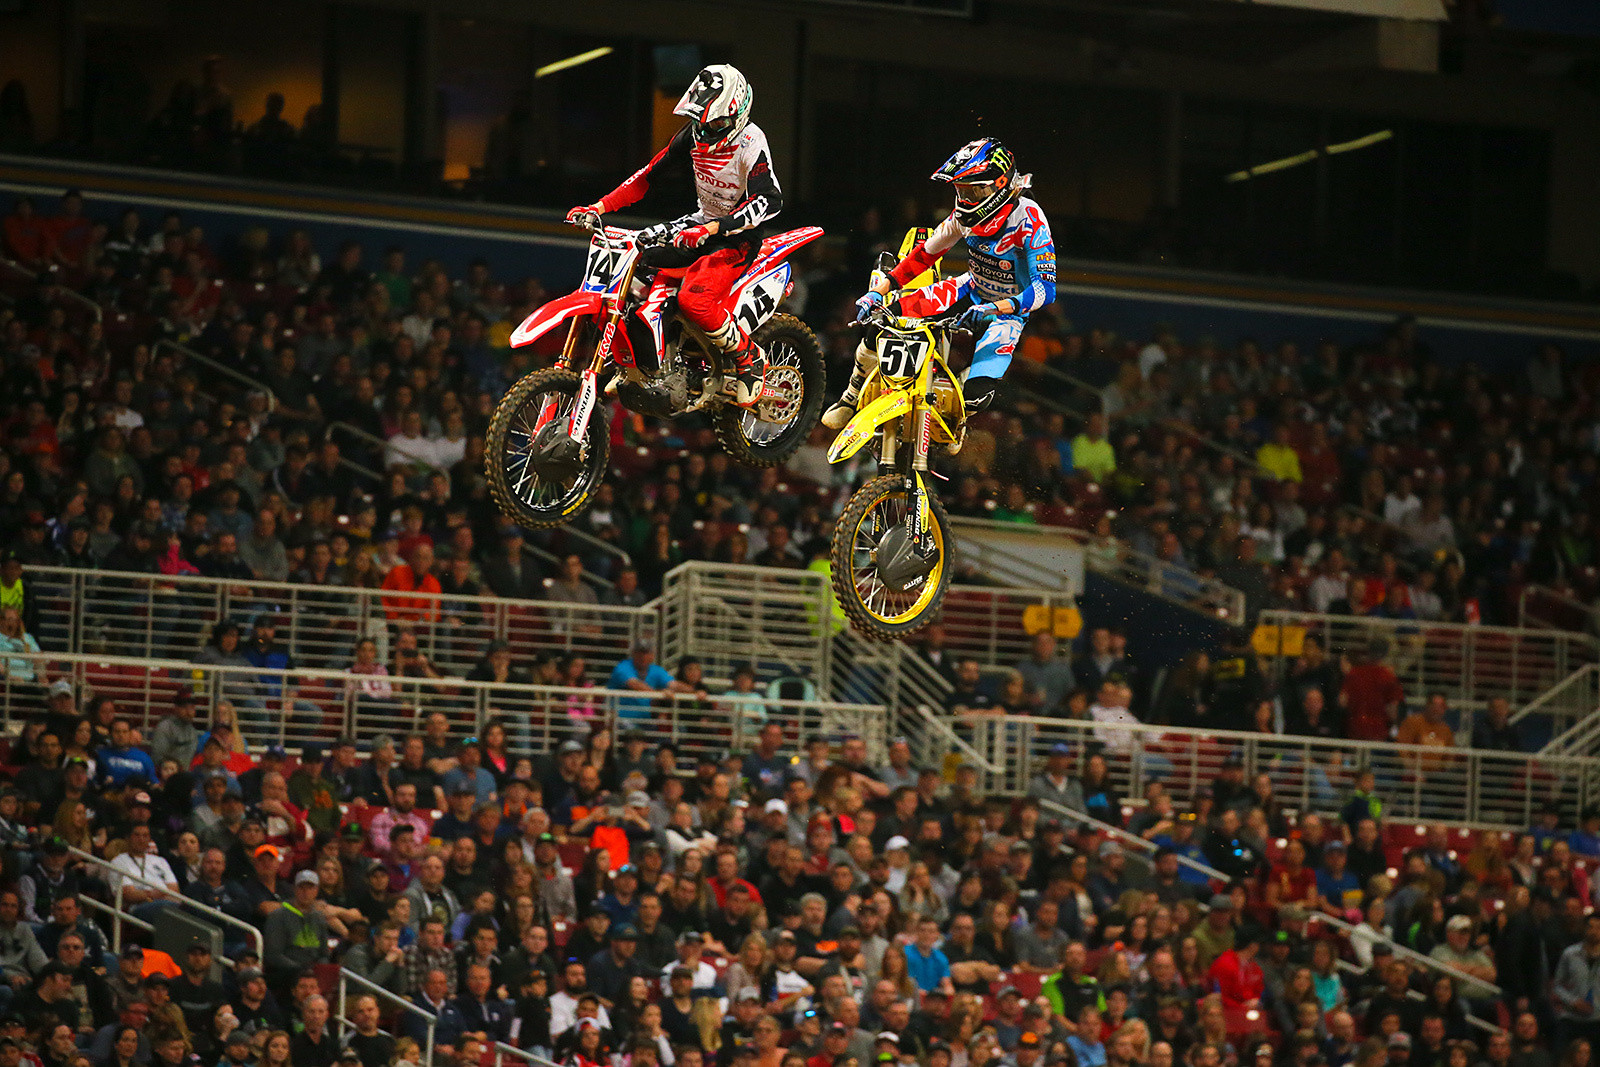 Cole Seely and Justin Barcia - Photo Blast: St. Louis - Motocross Pictures - Vital MX